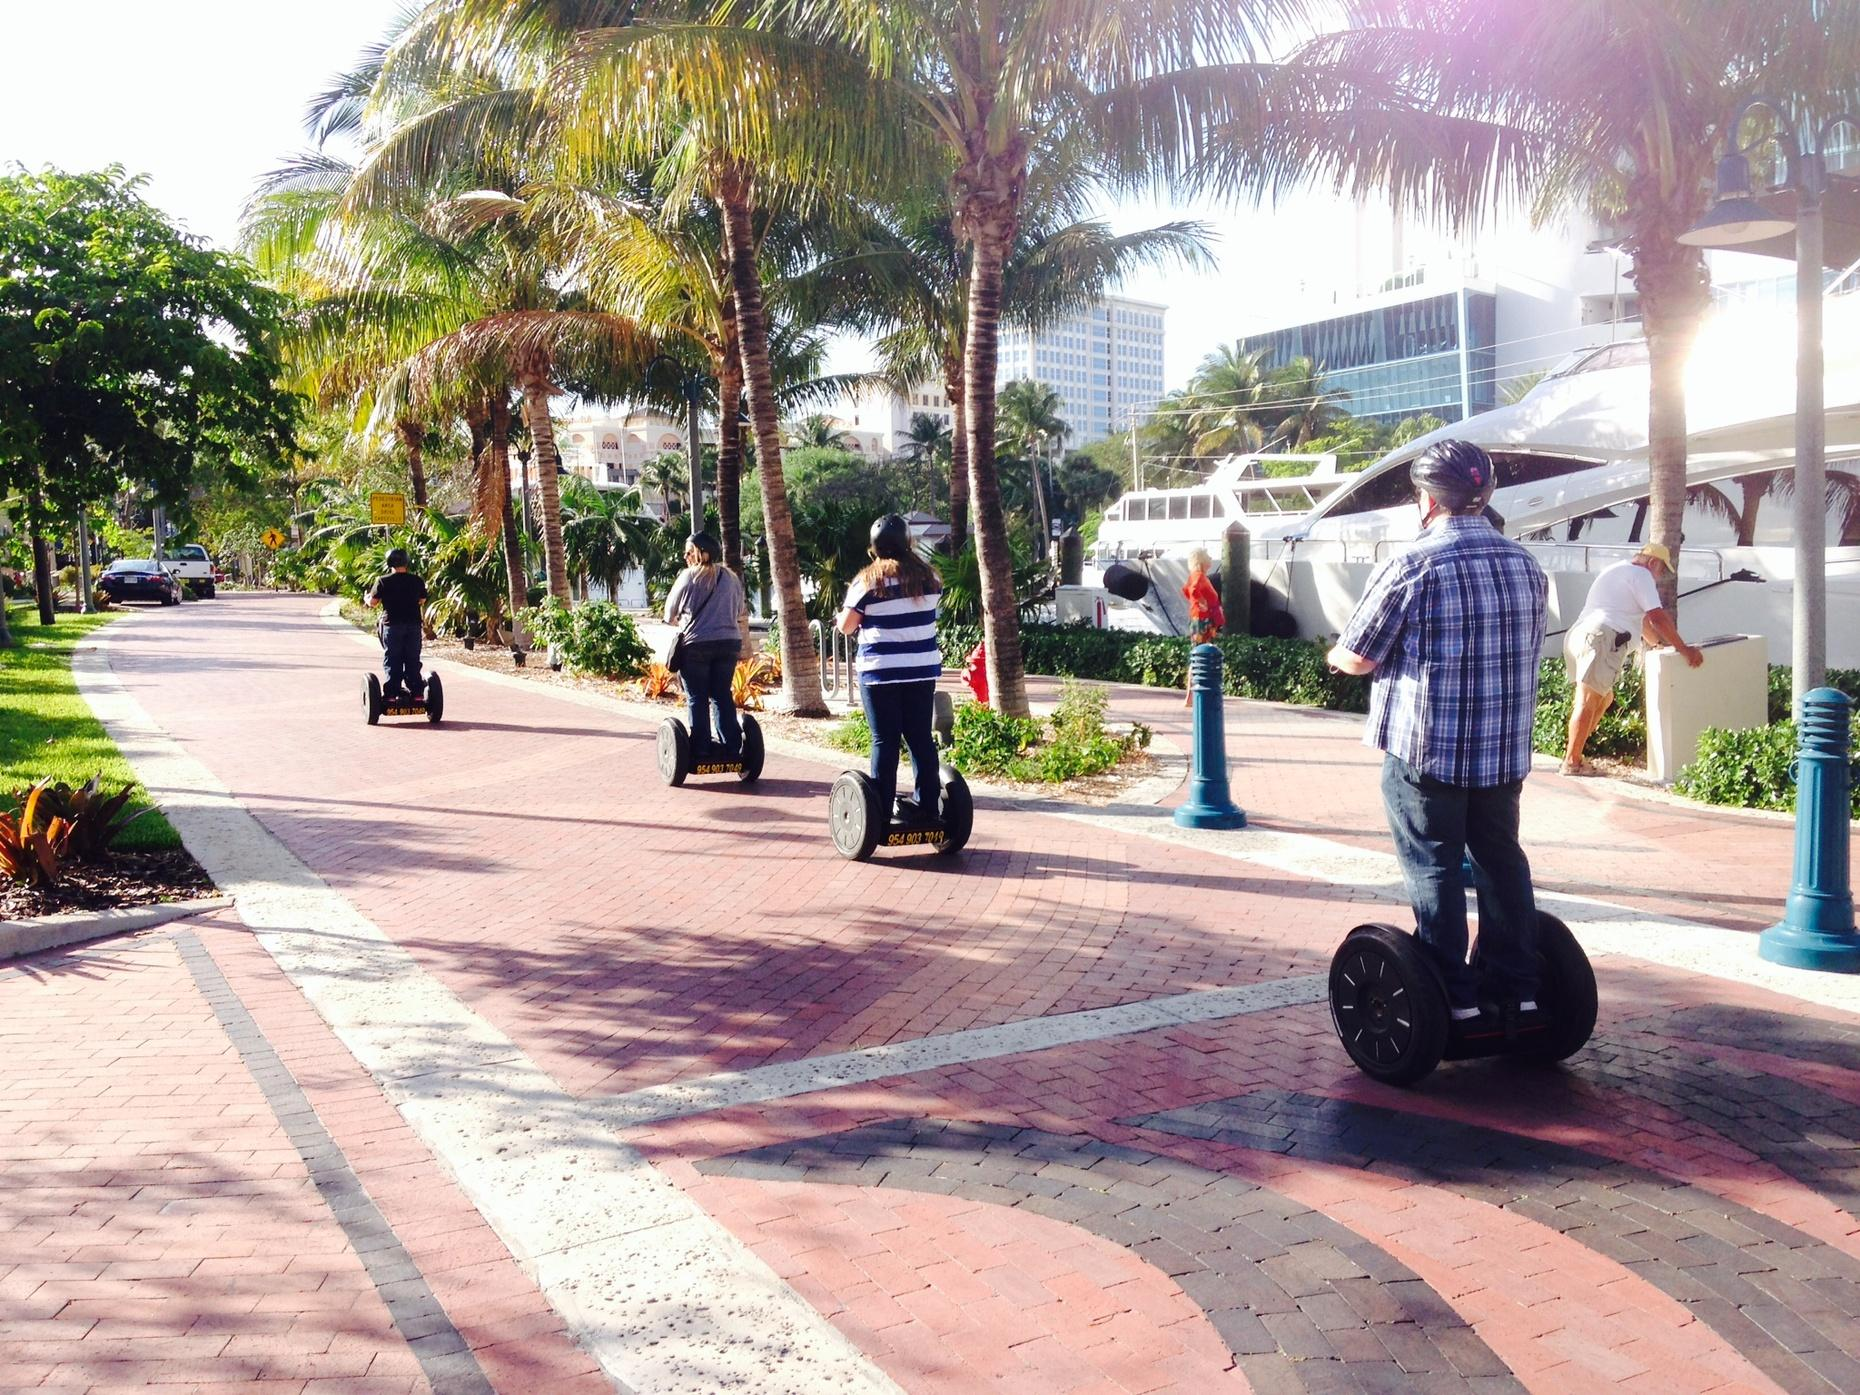 10-Mile Segway Tour of Fort Lauderdale